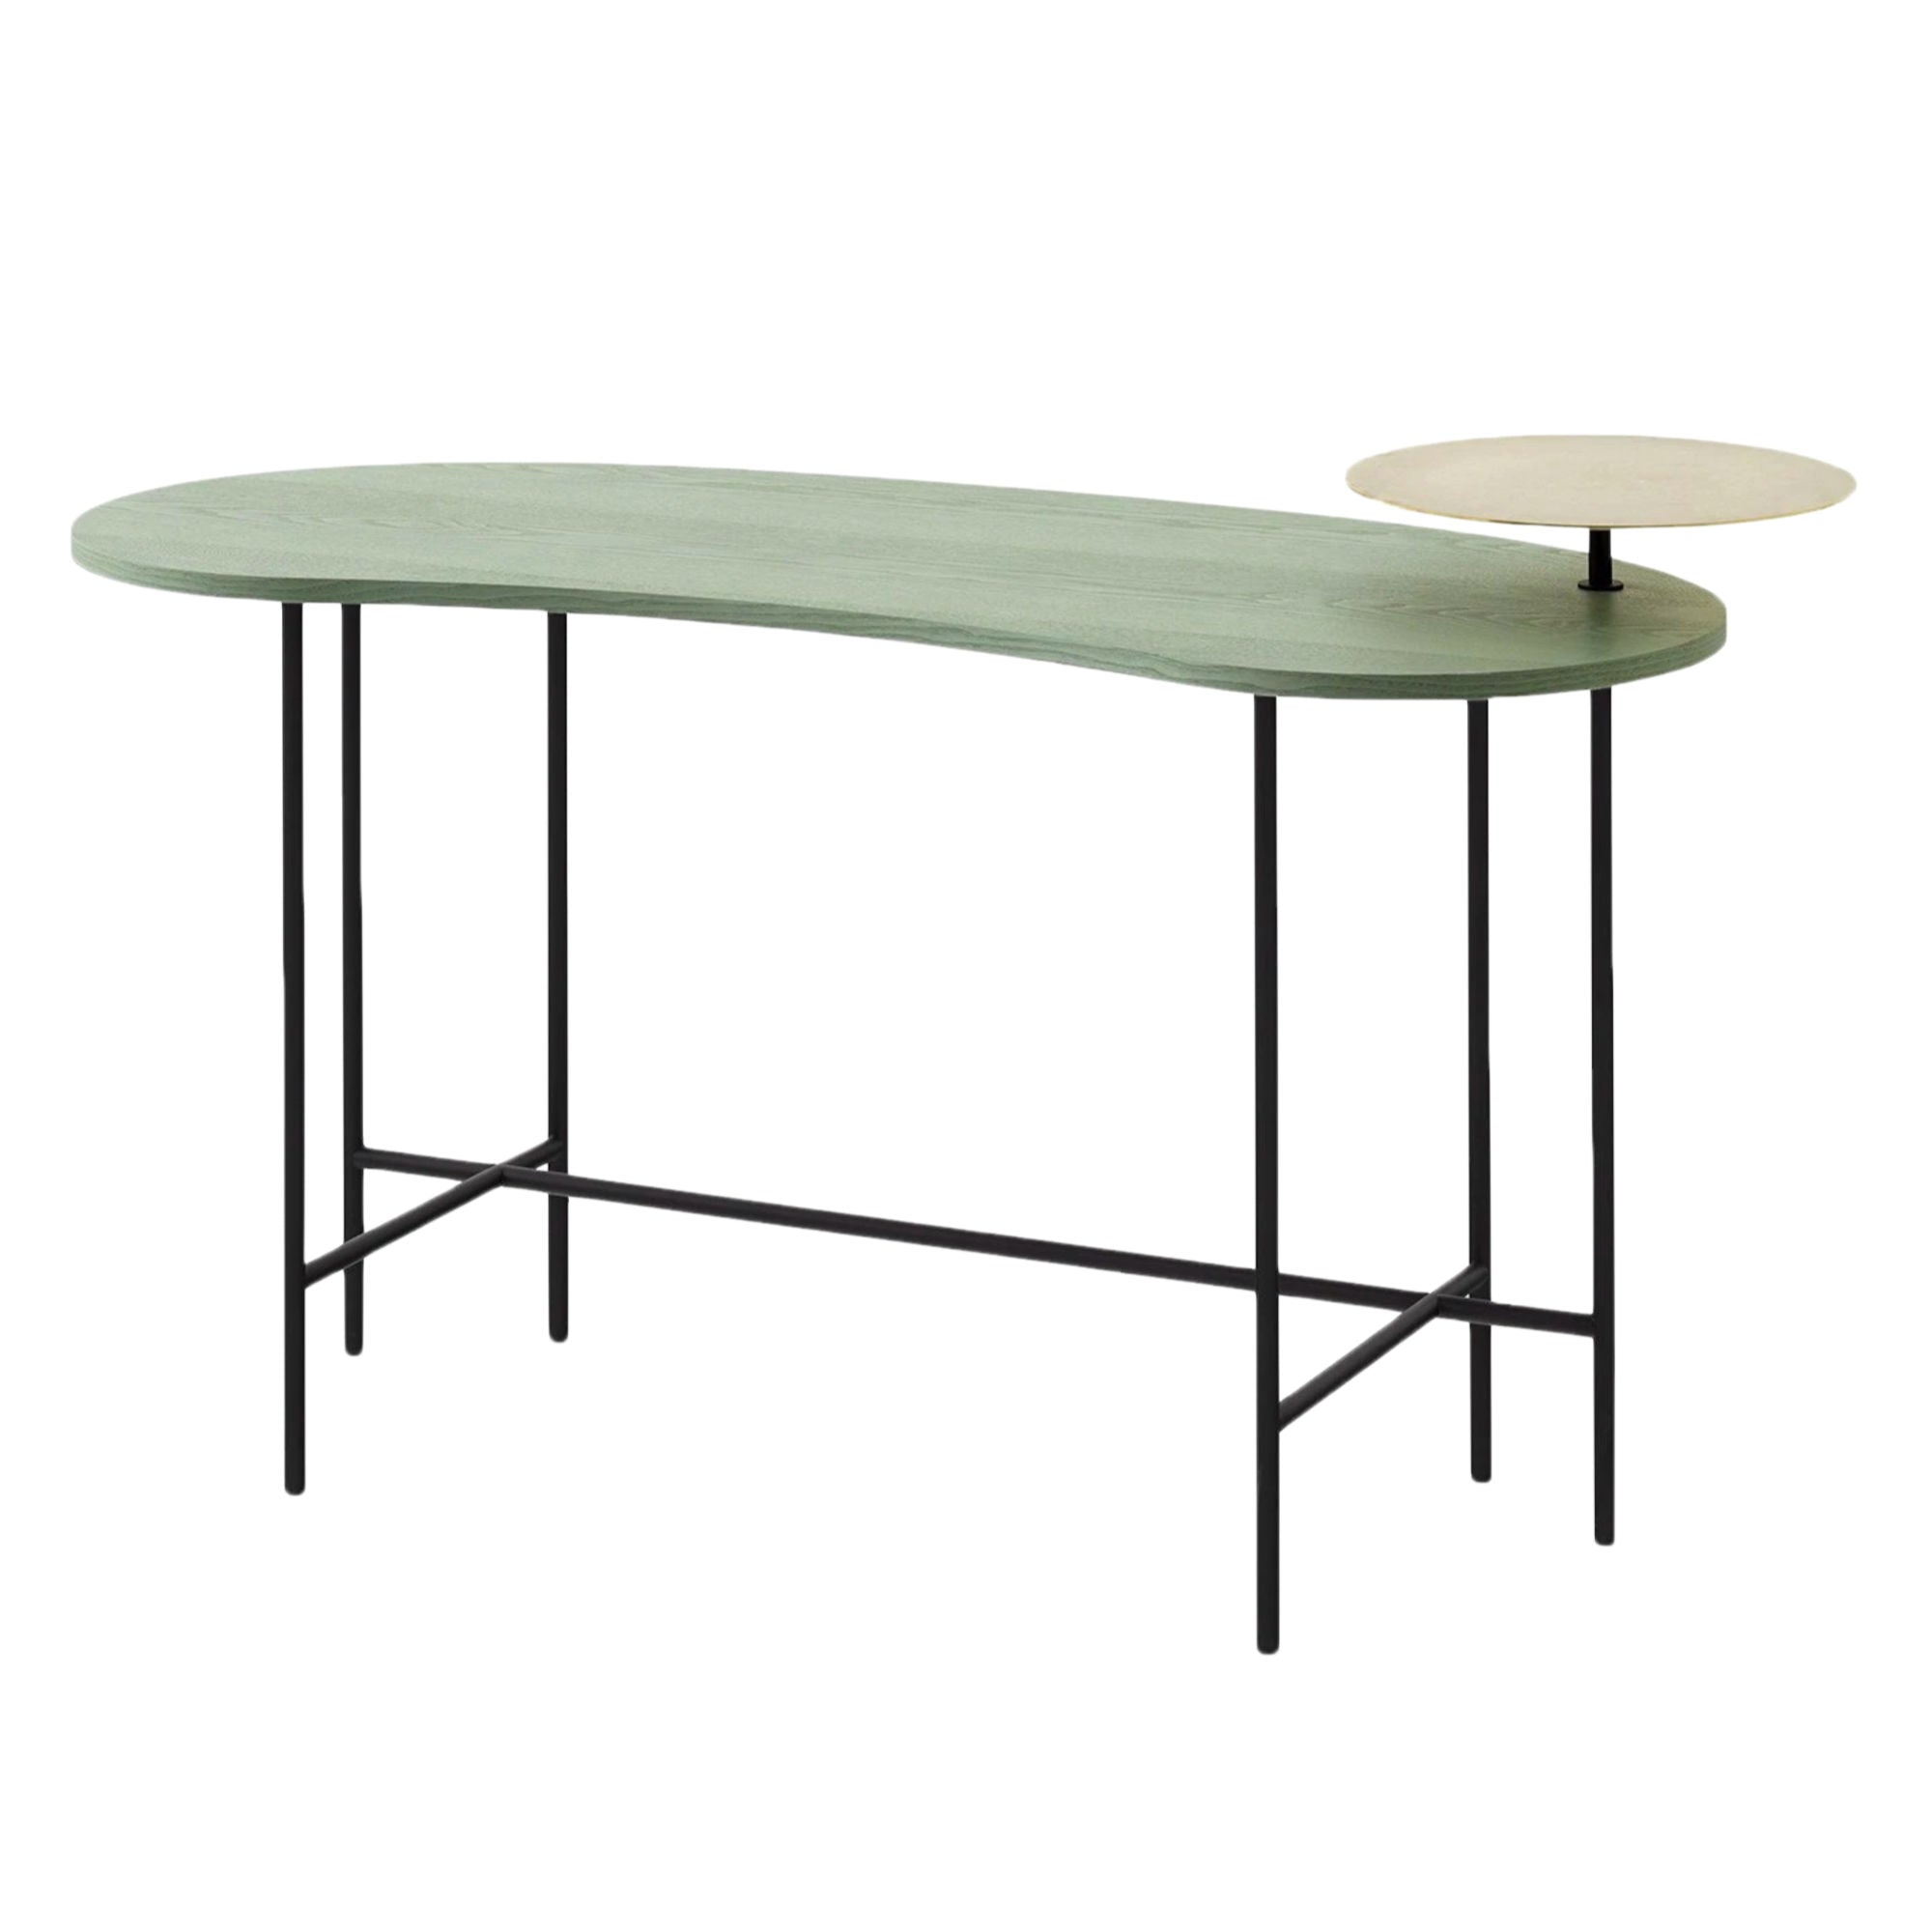 &Tradition JH9 Palette Desk , Brass-Grey Green Lacquered Ash Veneer